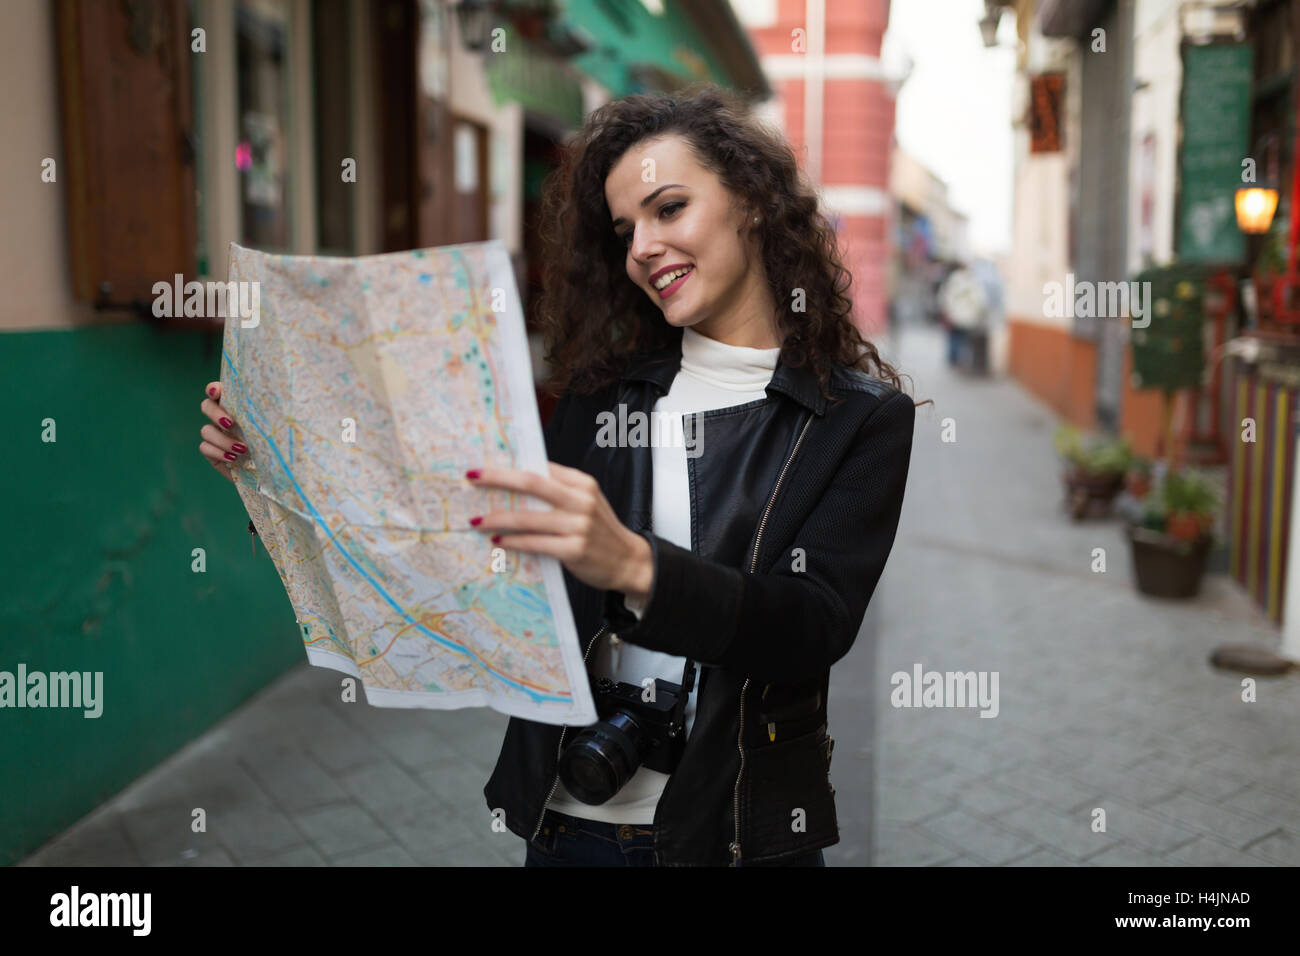 Beautiful lady exploring city and traveling - Stock Image